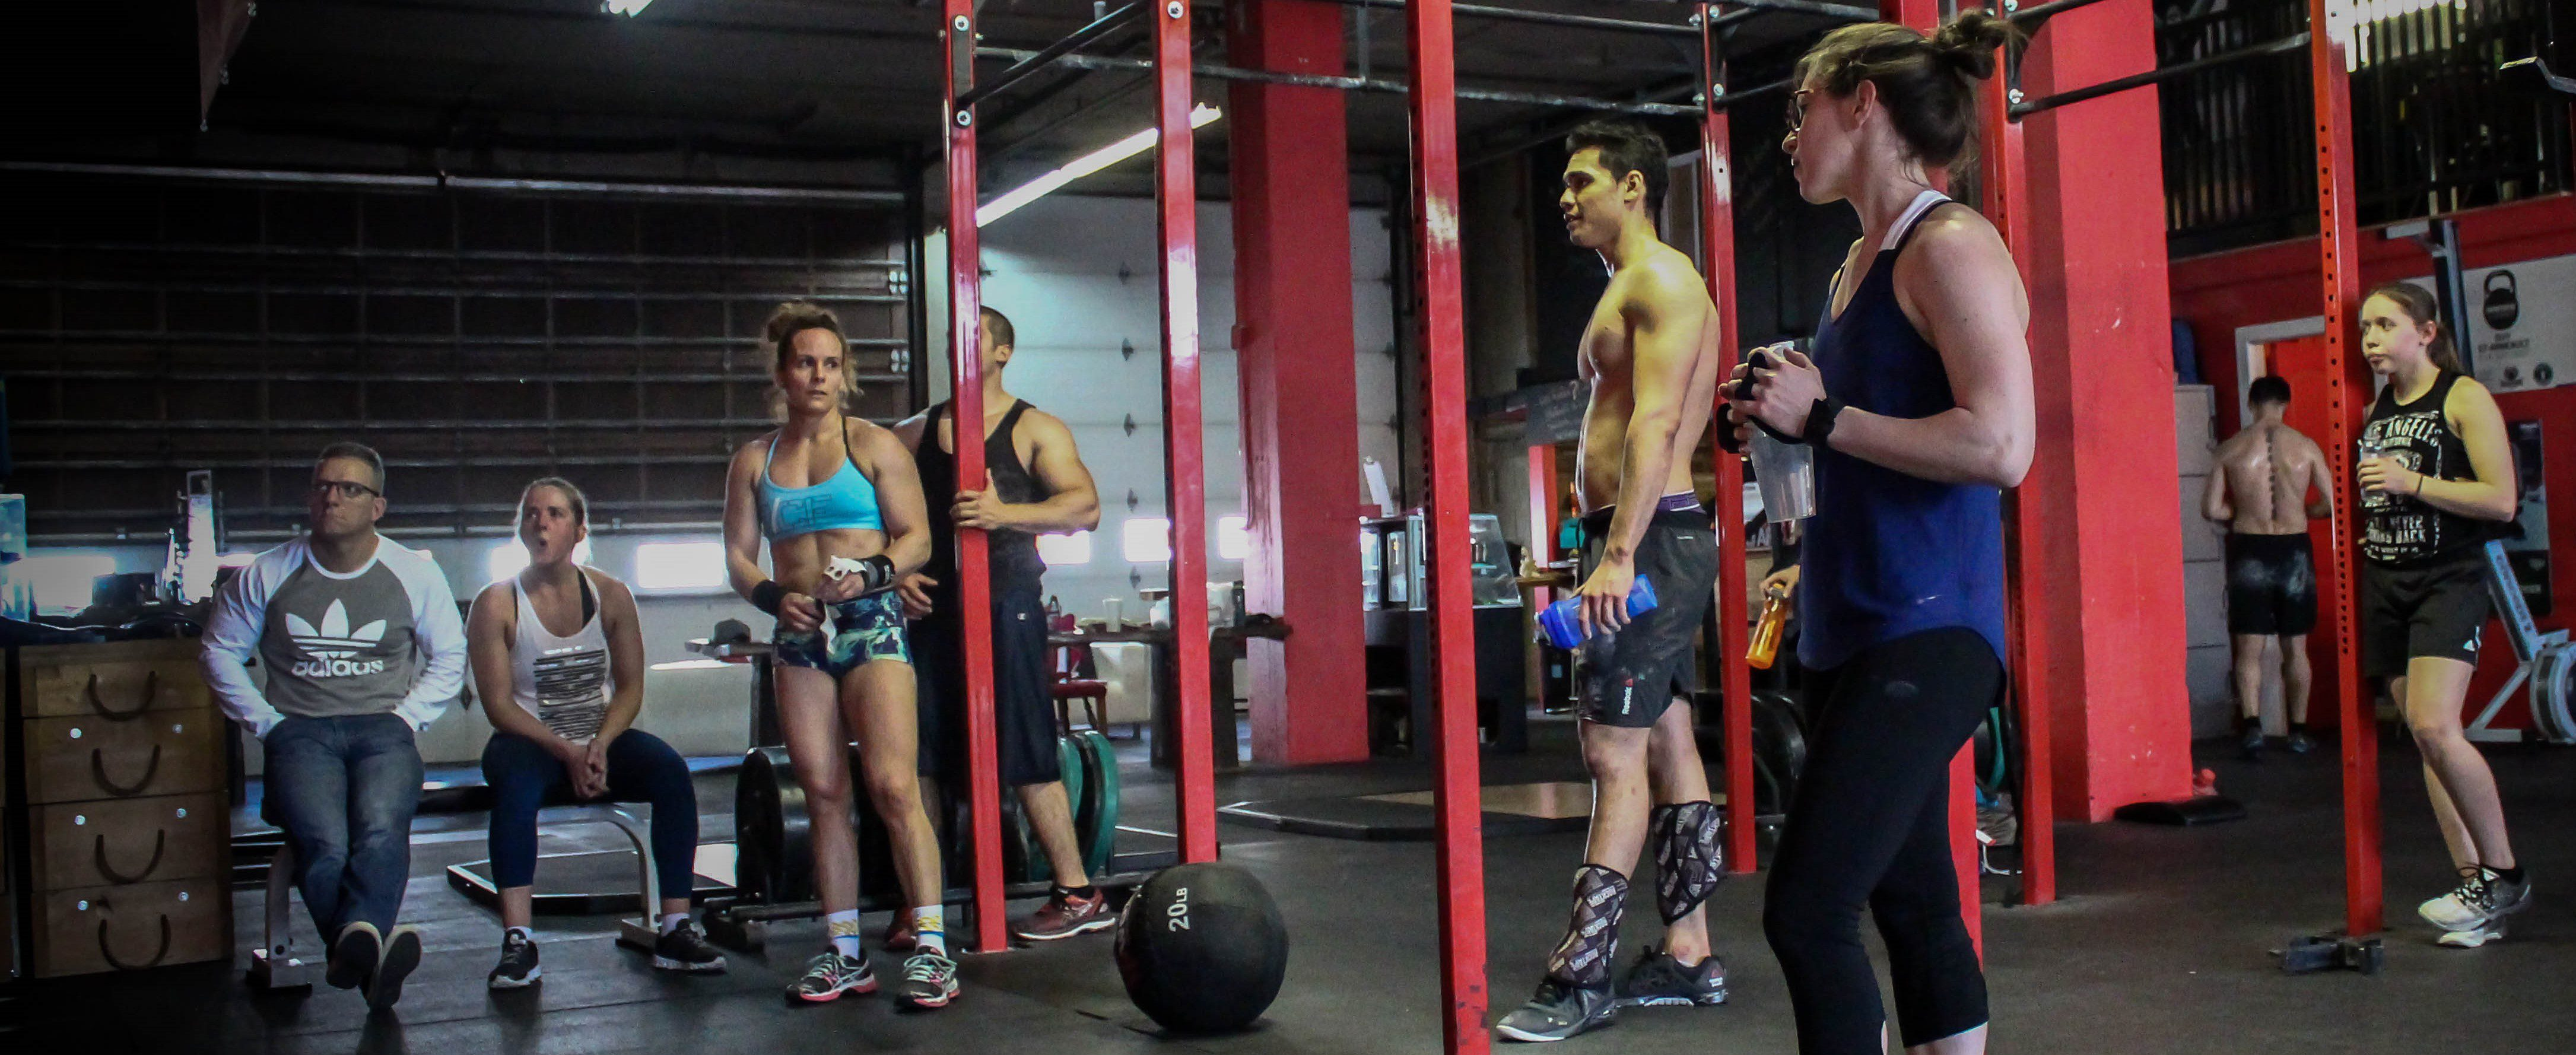 crossfit dating canada The latest tweets from crossfit amsterdam (@crossfitxxx) where pleasure meets pain | workouts of the day | your workout is our warmup | we are dedicated.